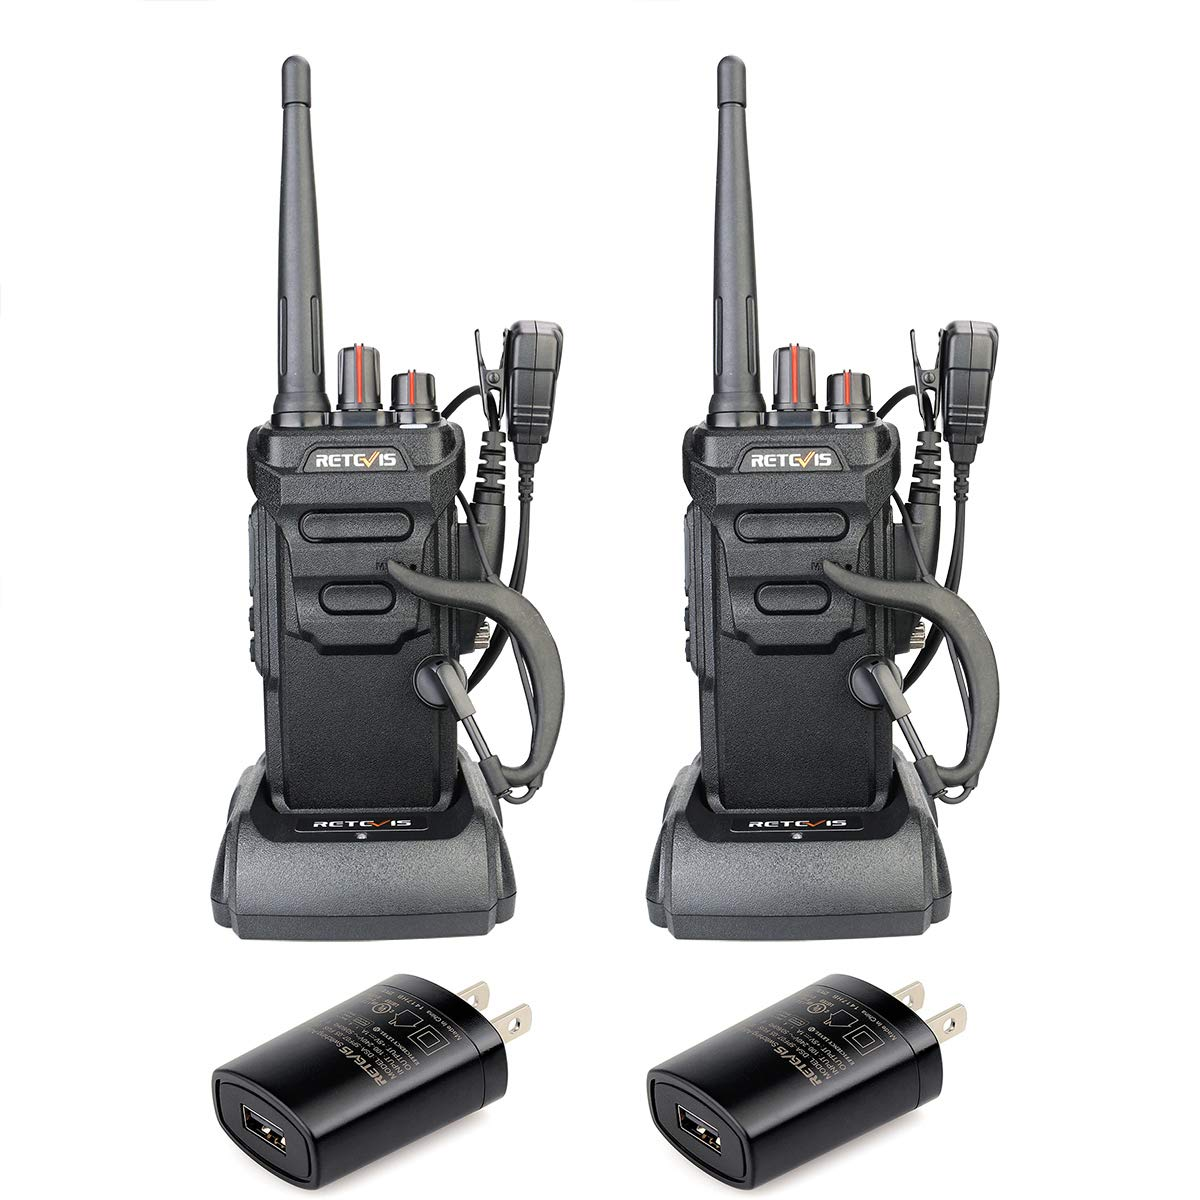 Retevis RT48 Walkie Talkie IP67 Waterproof VOX Monitor Security Two-way Radios Emergency Alarm Hurricane Radio 2 Pack